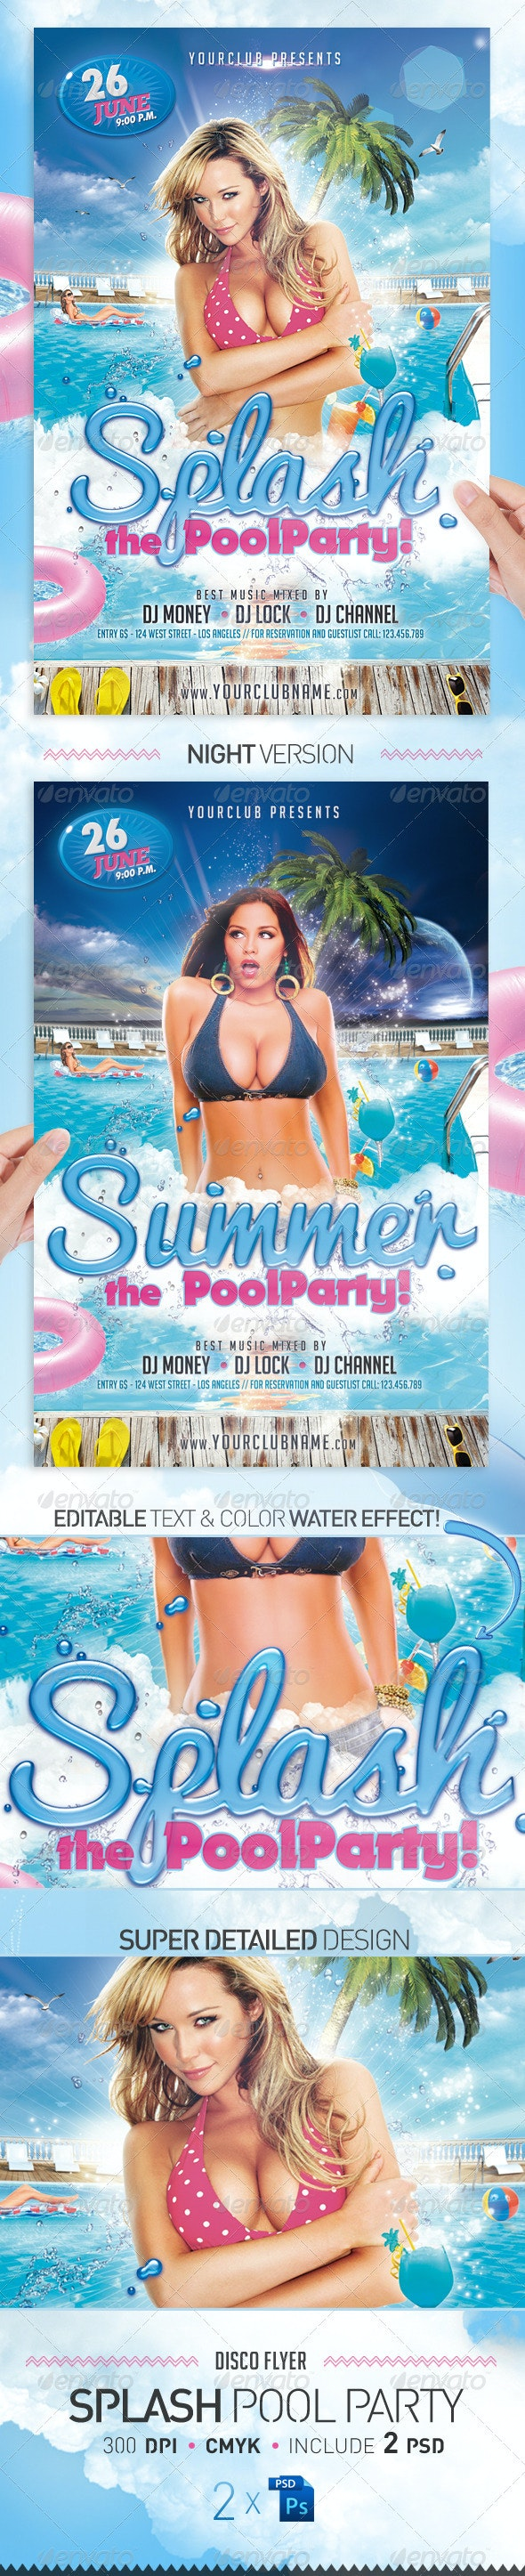 Splash Pool Party Flyer Template - Clubs & Parties Events